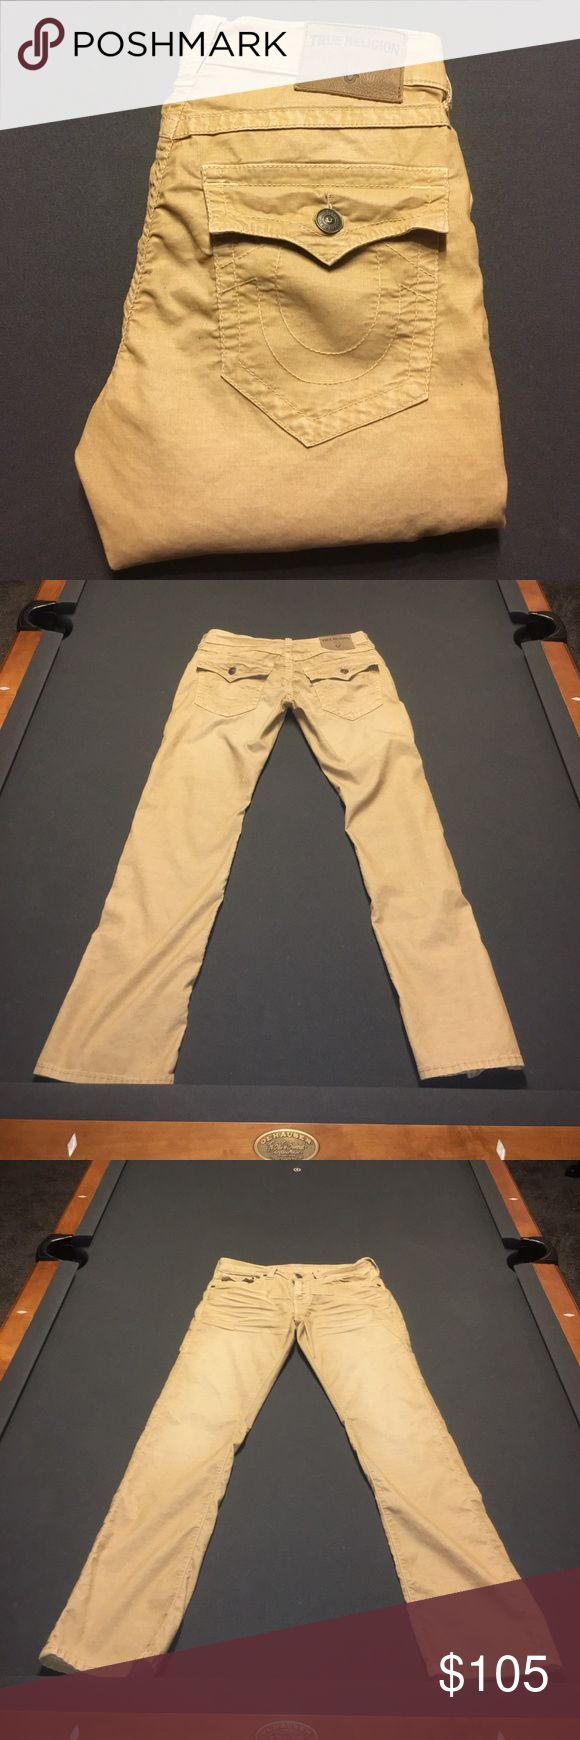 """Men's True Religion corduroy pants These men's true religion corduroy pants are 100% authentic and are NEW WITHOUT TAGS! I am selling these because I ordered them from Truereligion.com and they were too big and so I offered to sell them to a """"friend"""" and they took the tags off and did not buy them and so I couldn't send them back. NOTE- all True Religion Brand Jeans/Pants have a 35"""" inseam. If you have shorter legs you can hem them to fit unless you don't mind longer pant legs. True Religion…"""